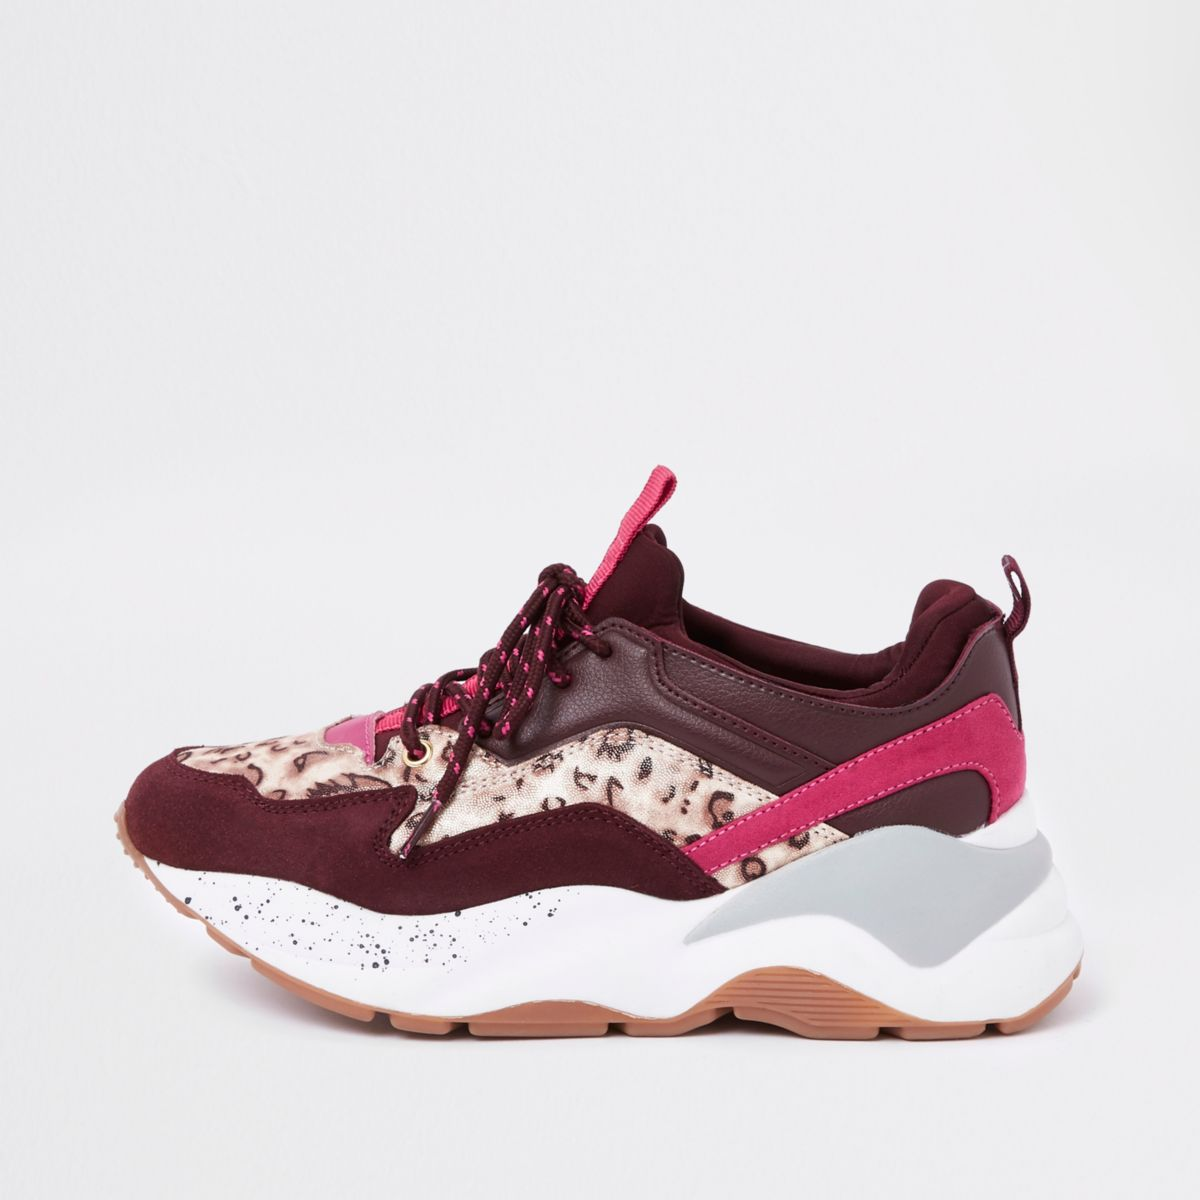 Dark red layered sole lace-up sneakers